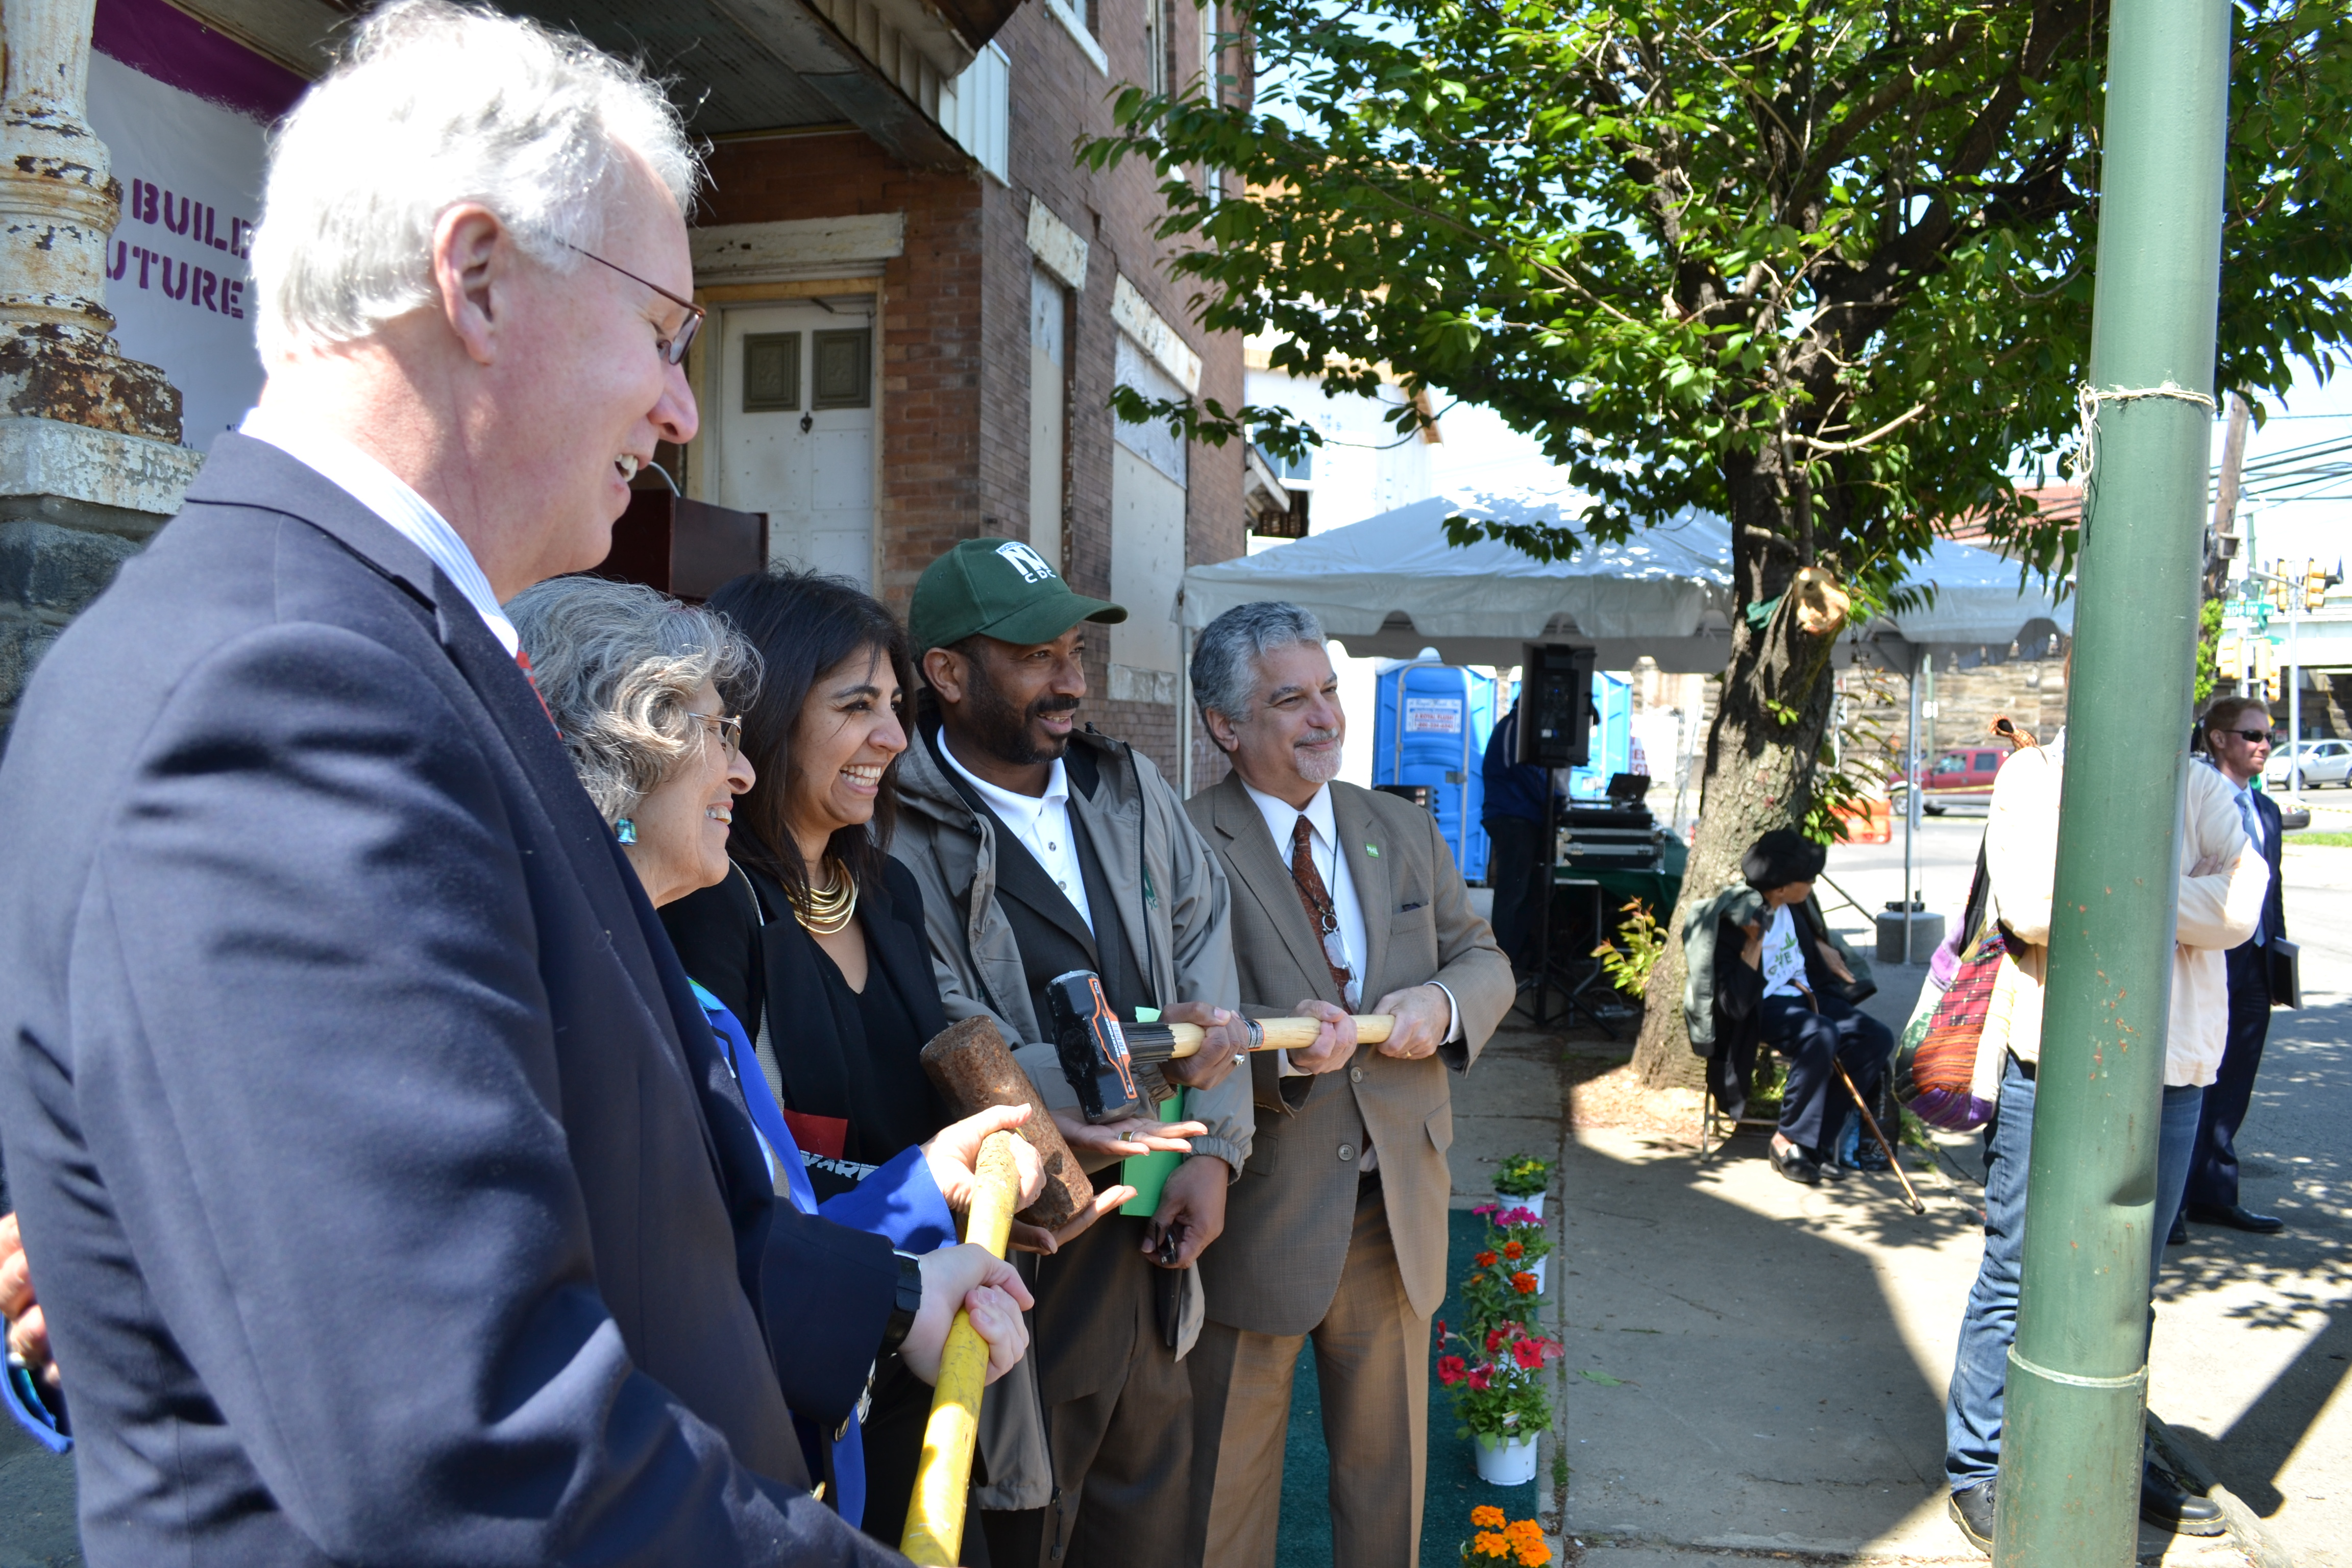 Saint-Gobain, YouthBuild, Nicetown CDC and Philadelphia City leadership spoke at the groundbreaking